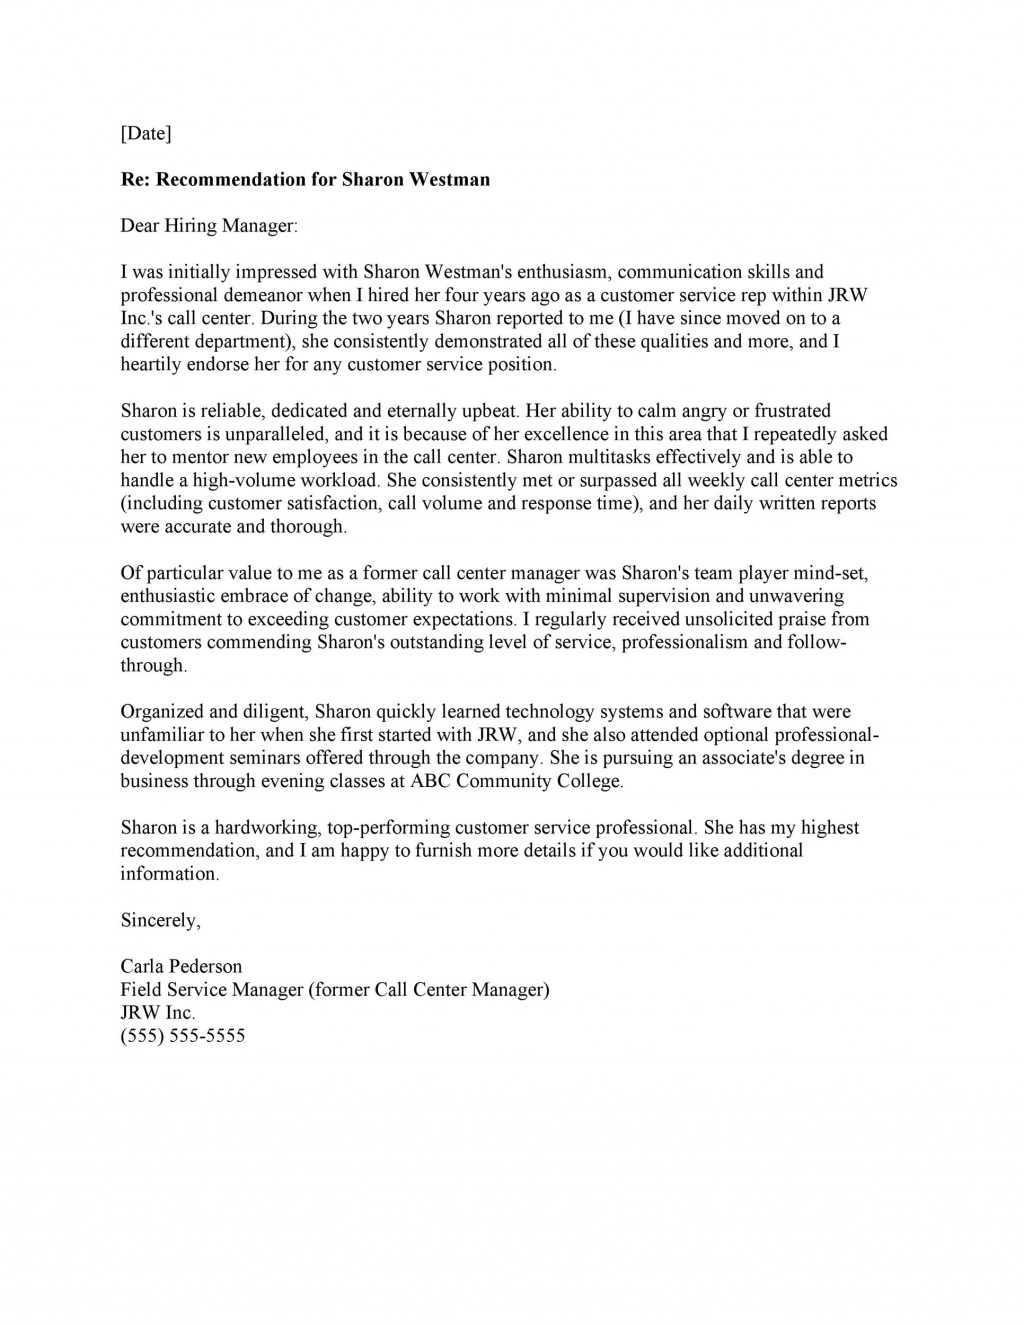 007 Fearsome Professional Reference Letter Template Inspiration  Doc Nursing FreeLarge